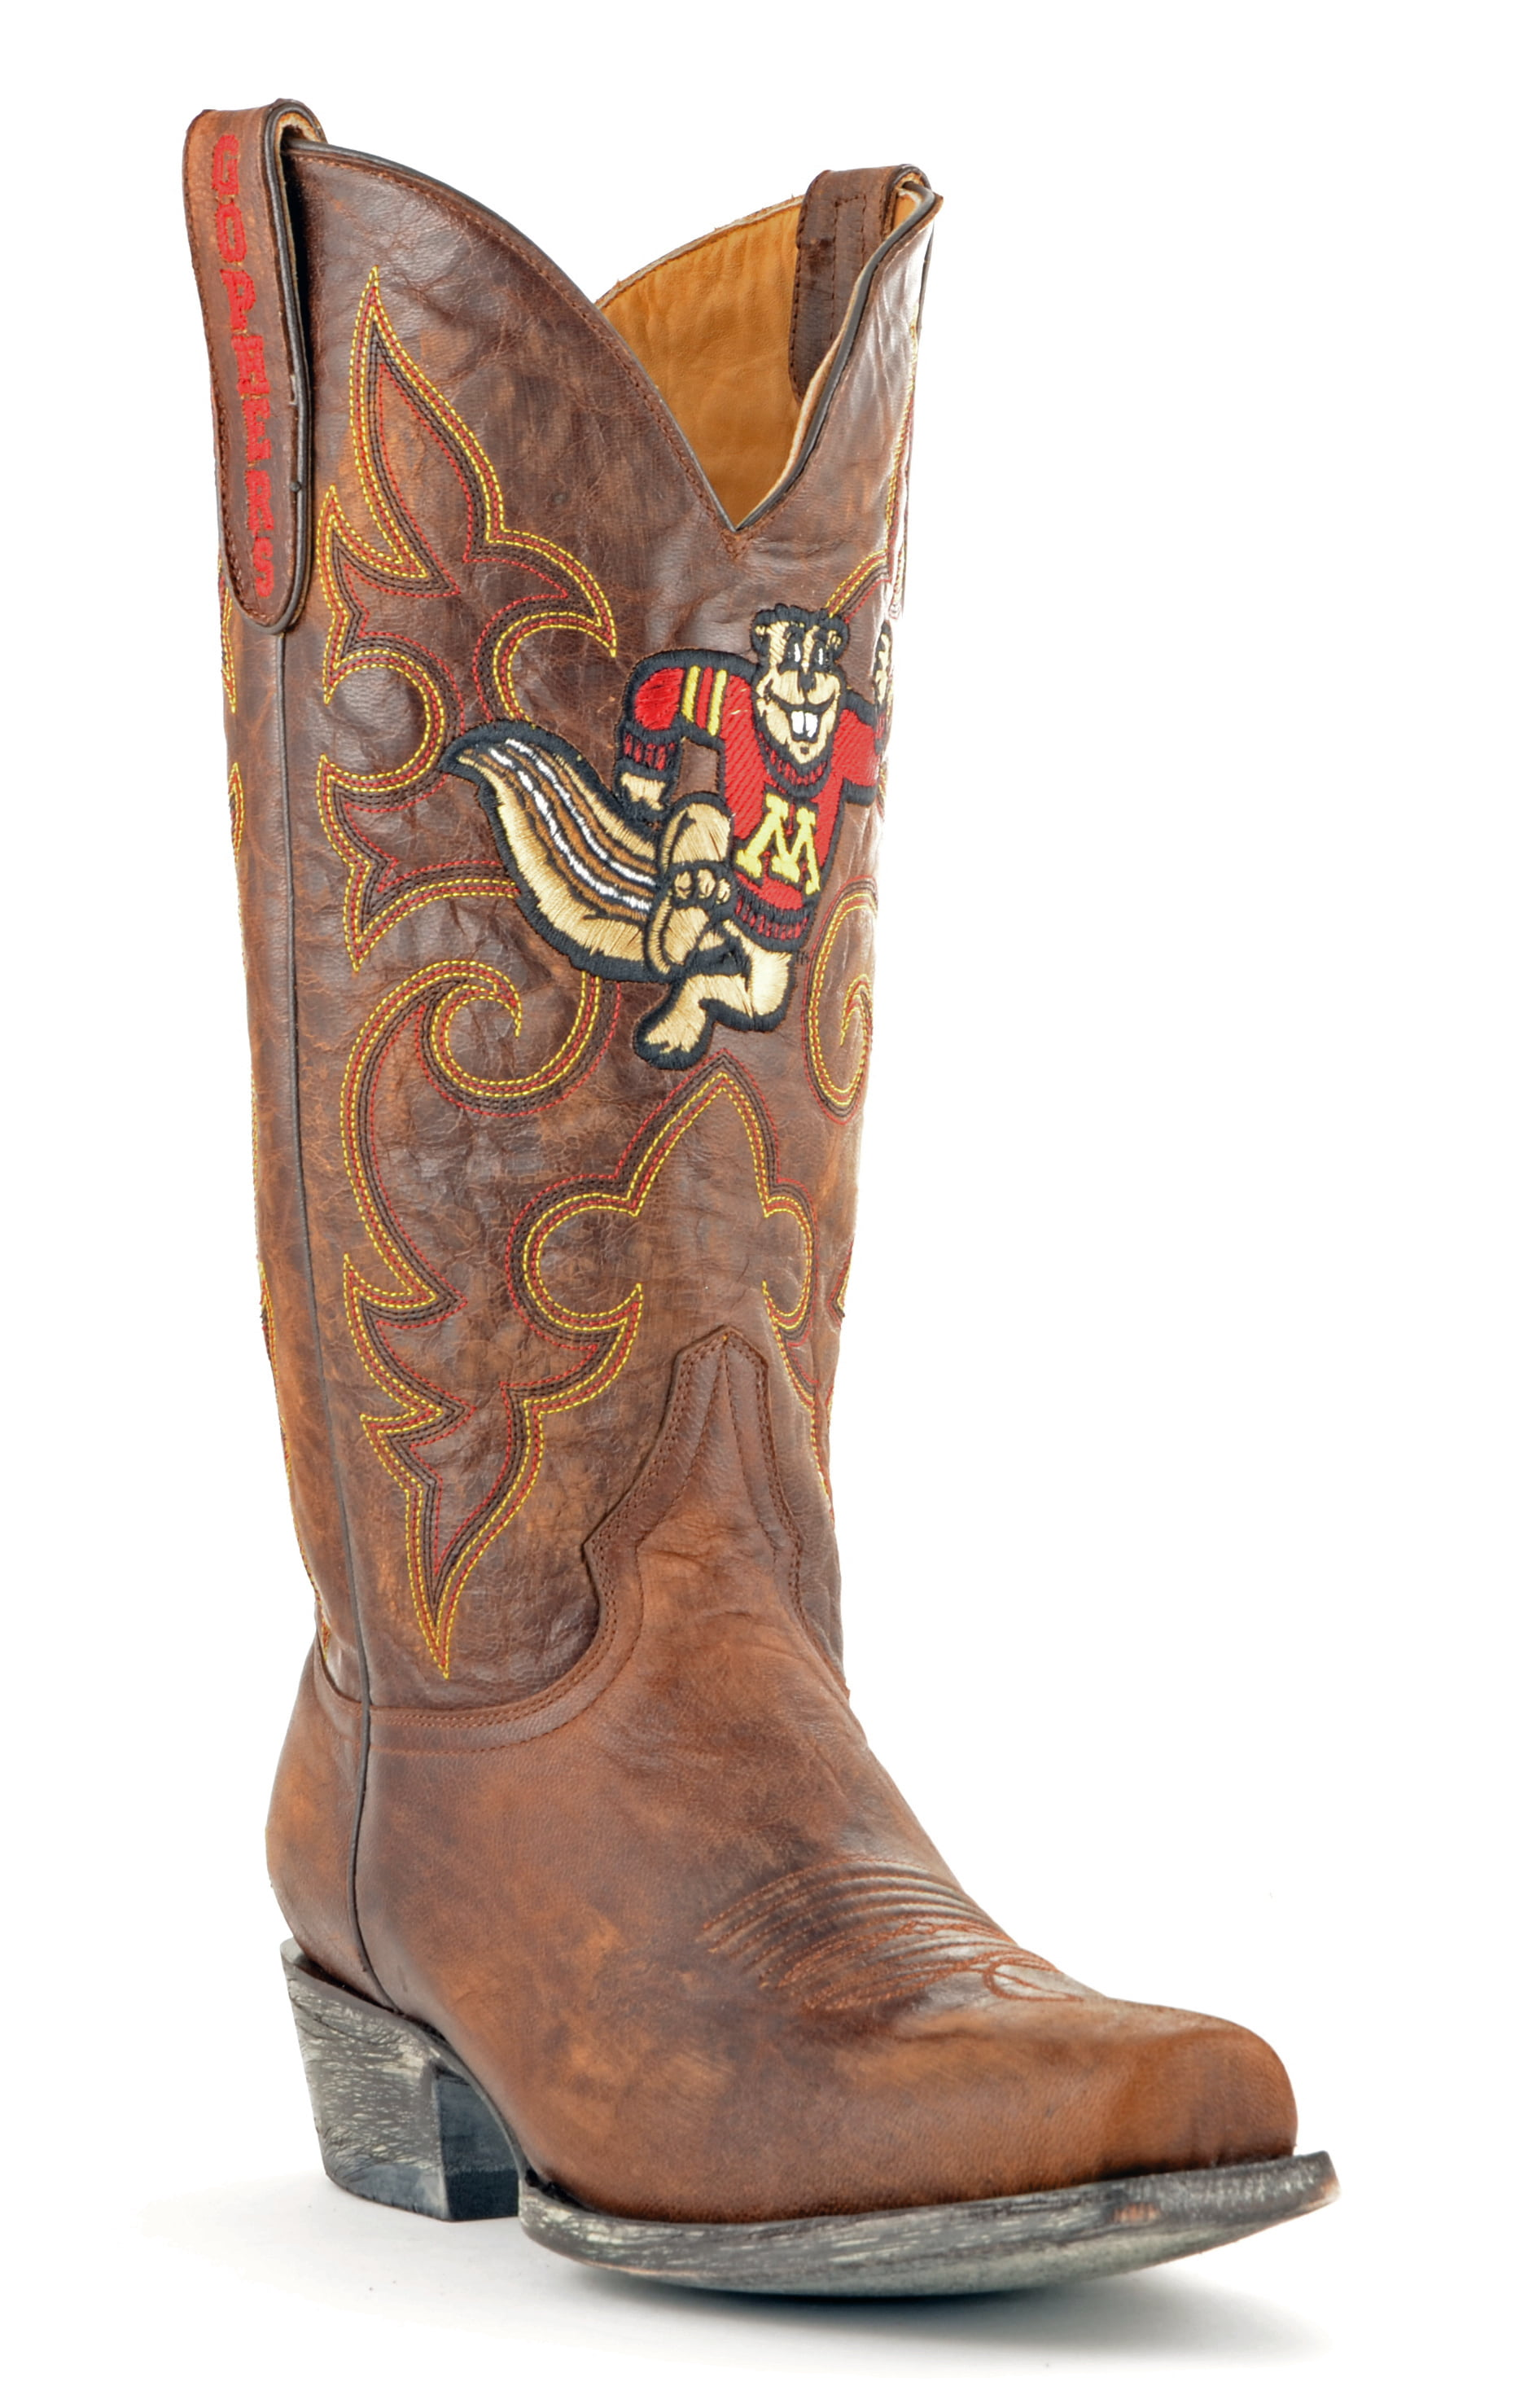 Gameday Boots Leather University Of Minnesota Board Room Cowboy Boots by GameDay Boots